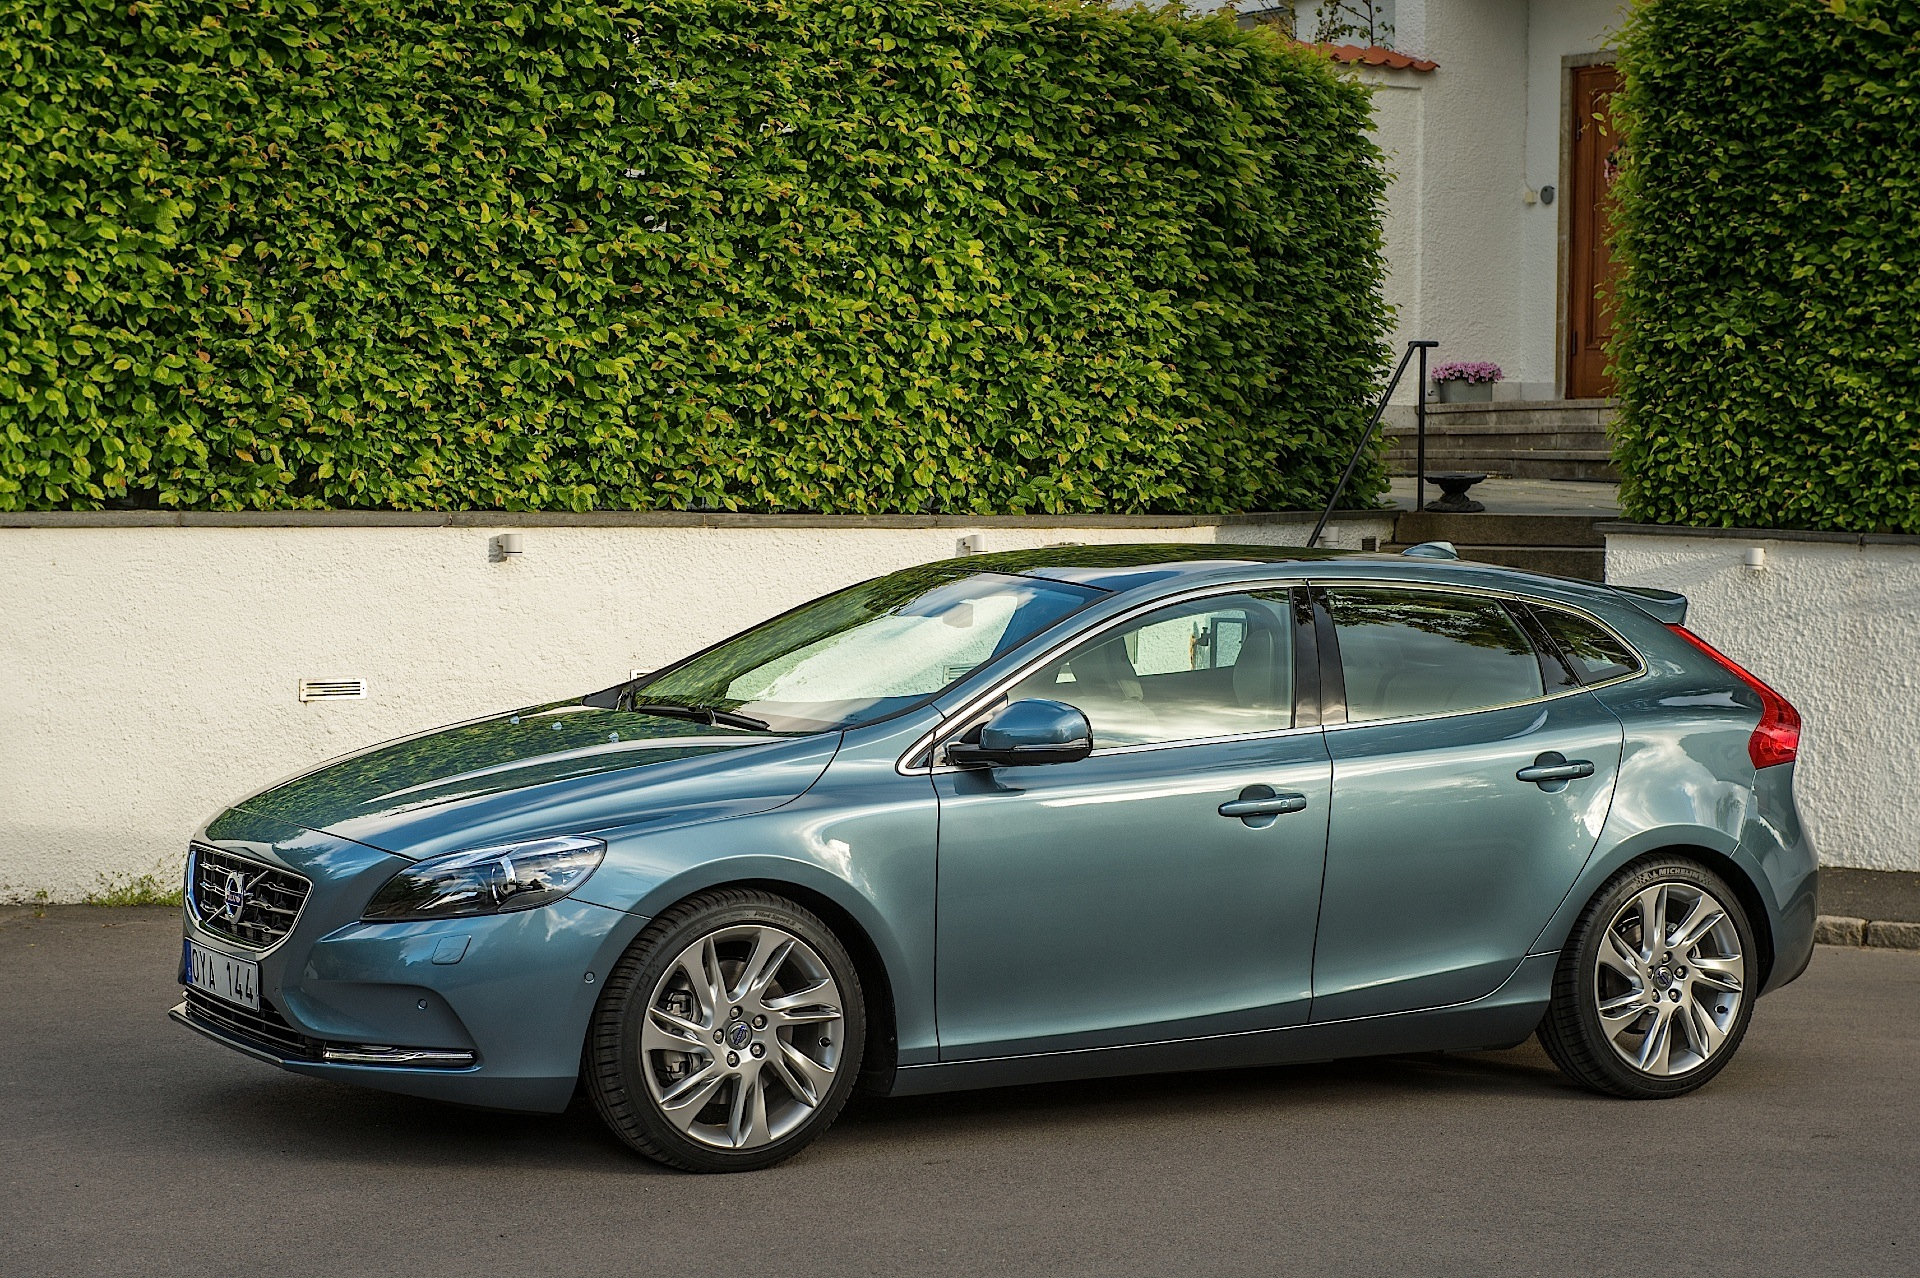 volvo v40 specs 2012 2013 2014 2015 2016 autoevolution. Black Bedroom Furniture Sets. Home Design Ideas